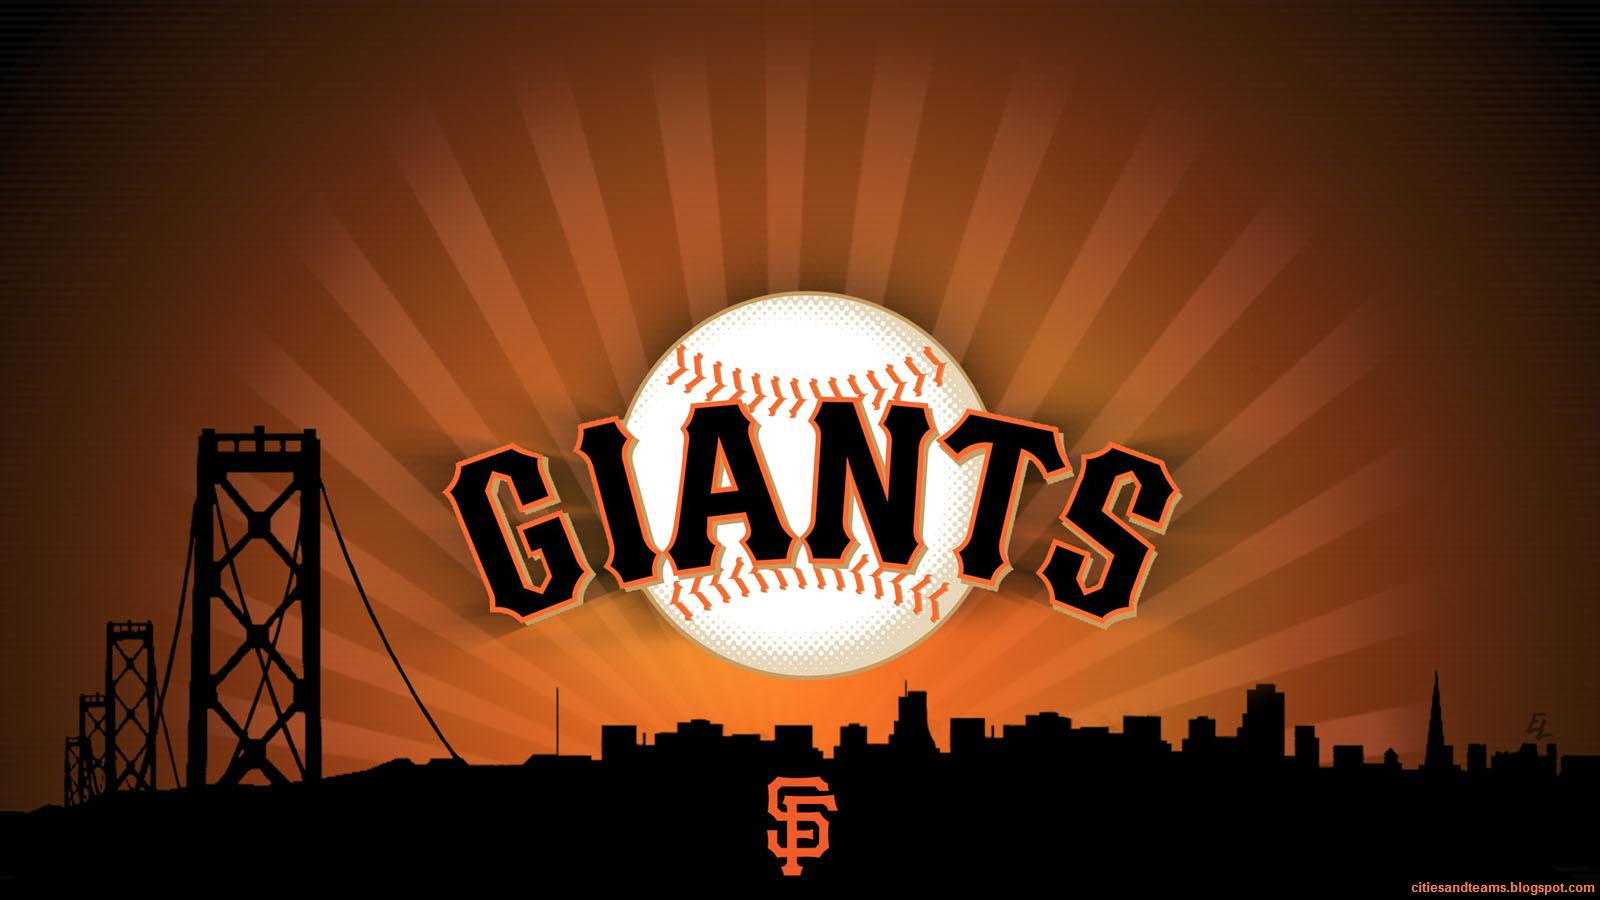 http://4.bp.blogspot.com/-qBNlrrqIYLE/UHXcGWuFdrI/AAAAAAAAIEU/1mhuTRBz61Q/s1600/San_Francisco_Giants_City_SFG_Major_League_Baseball_California_MLB_United_States_Hd_Desktop_Wallpaper_citiesandteams.blogspot.com.jpg